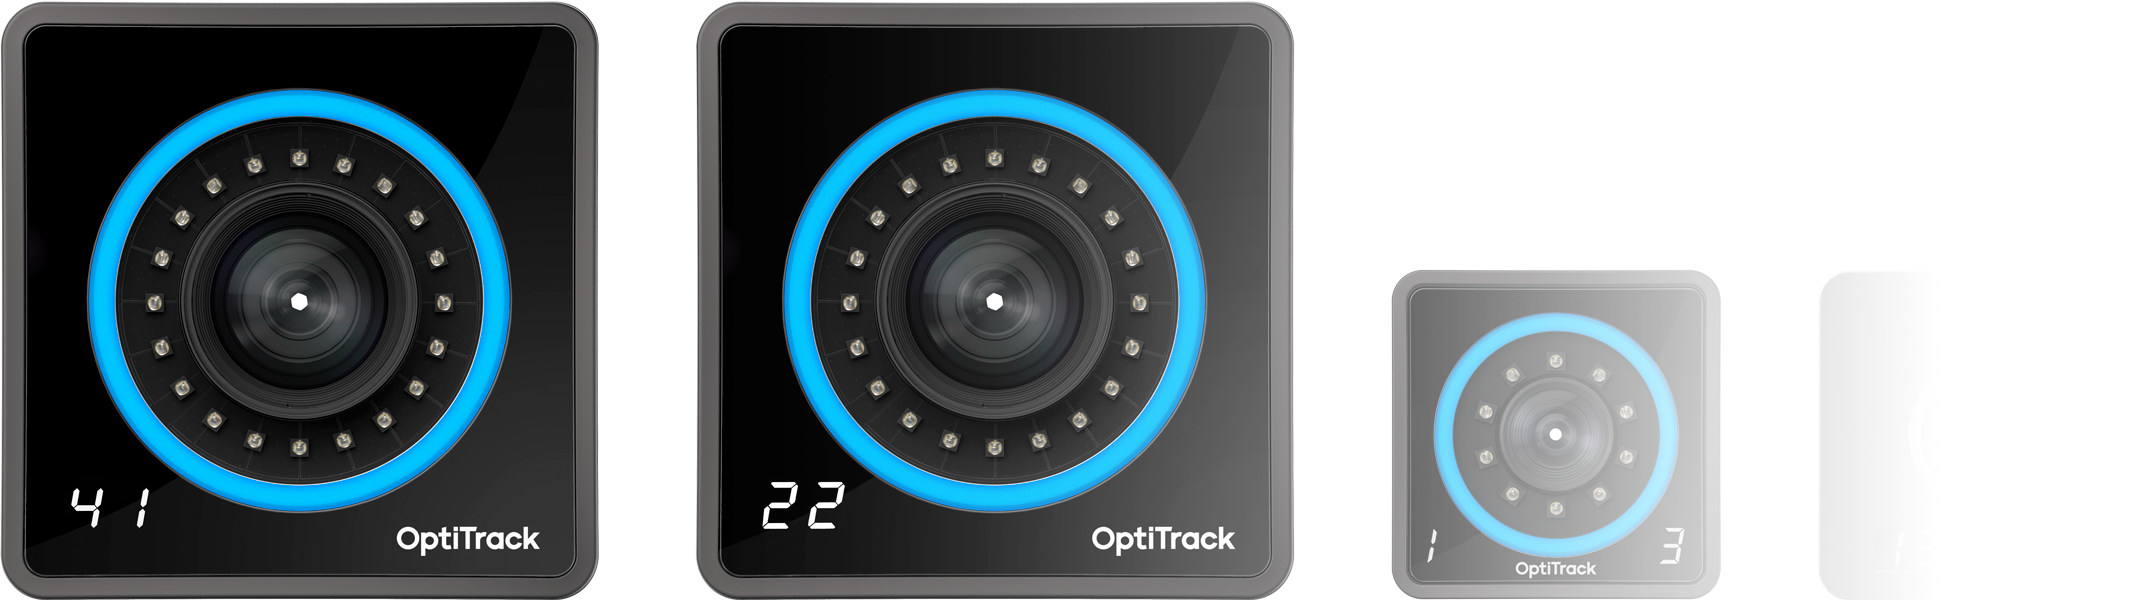 OptiTrack PrimeX camera series